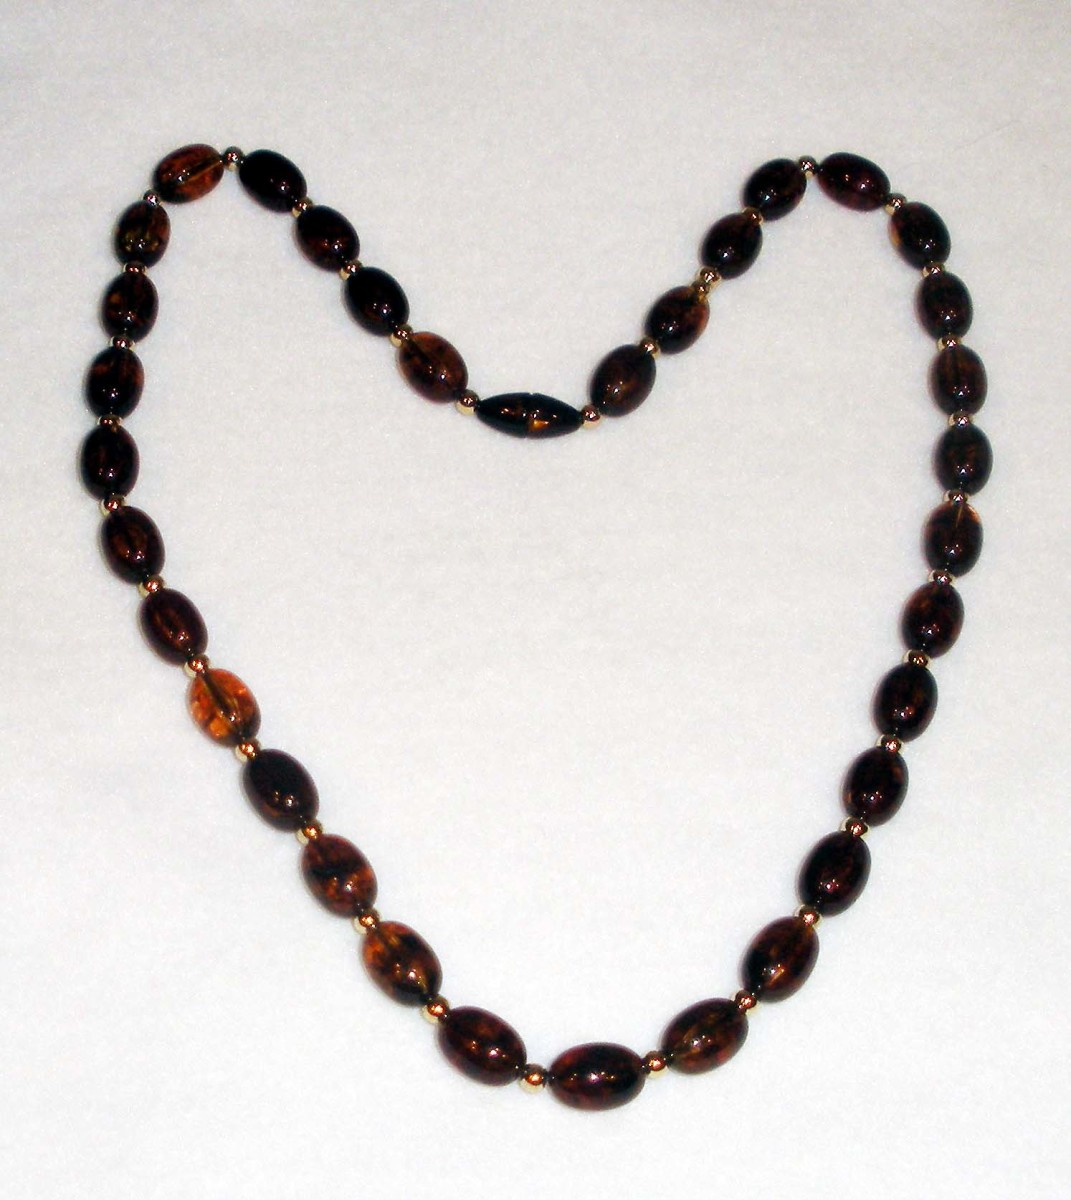 Ah--there it is!  Nice and tightly cropped, on a clean, bright background that offers maximum contrast, and well lit, showing the variations in the beads